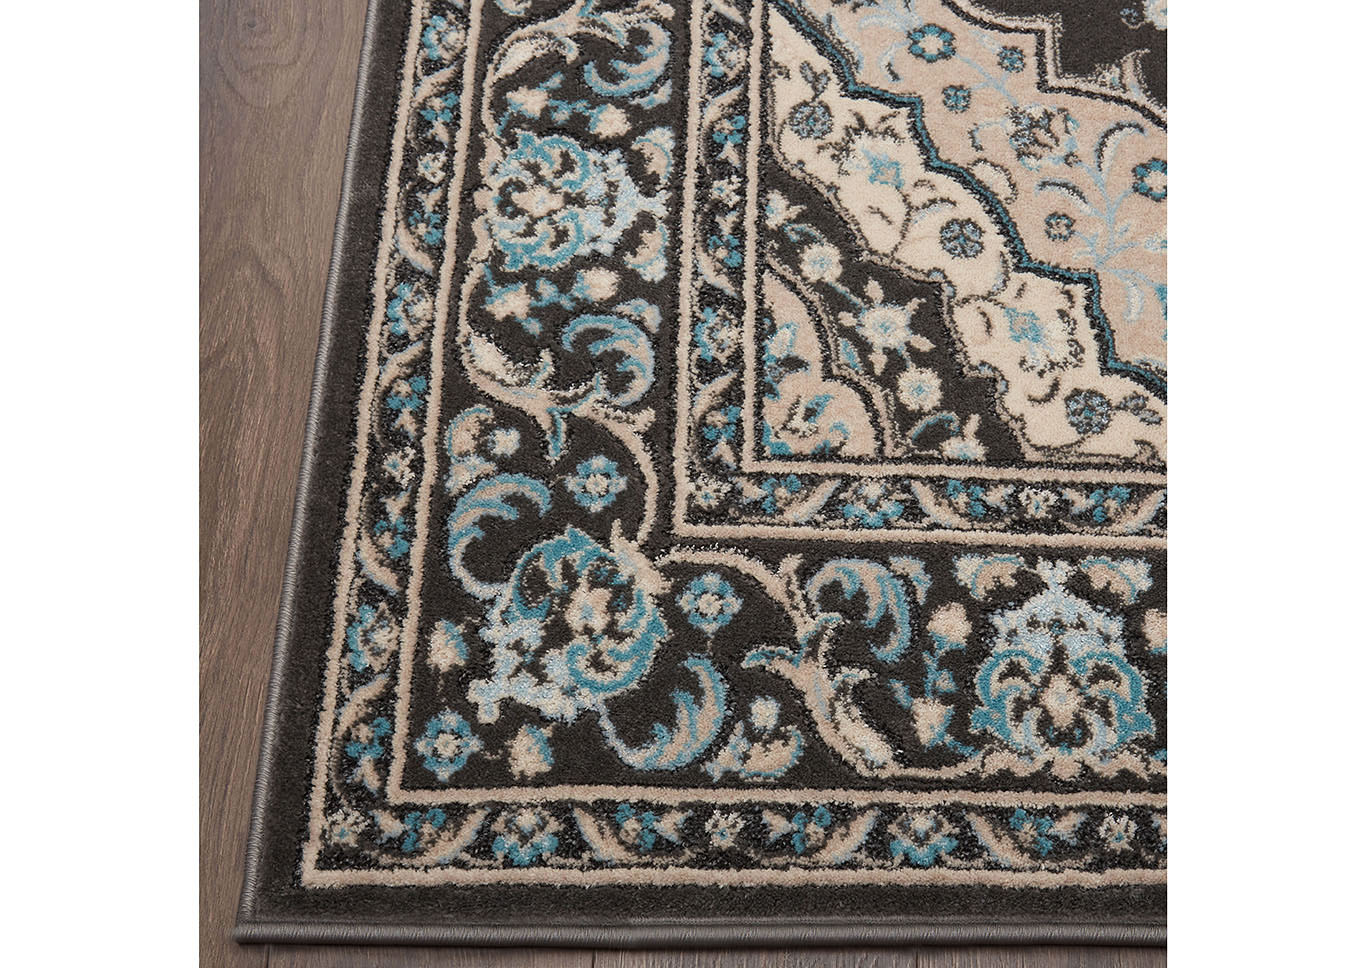 "Home Dynamix Oxford Caspian Traditional Area Rug 5'2""x7'2"" Medallion Gray/Beige/Blue,Home Dynamix"